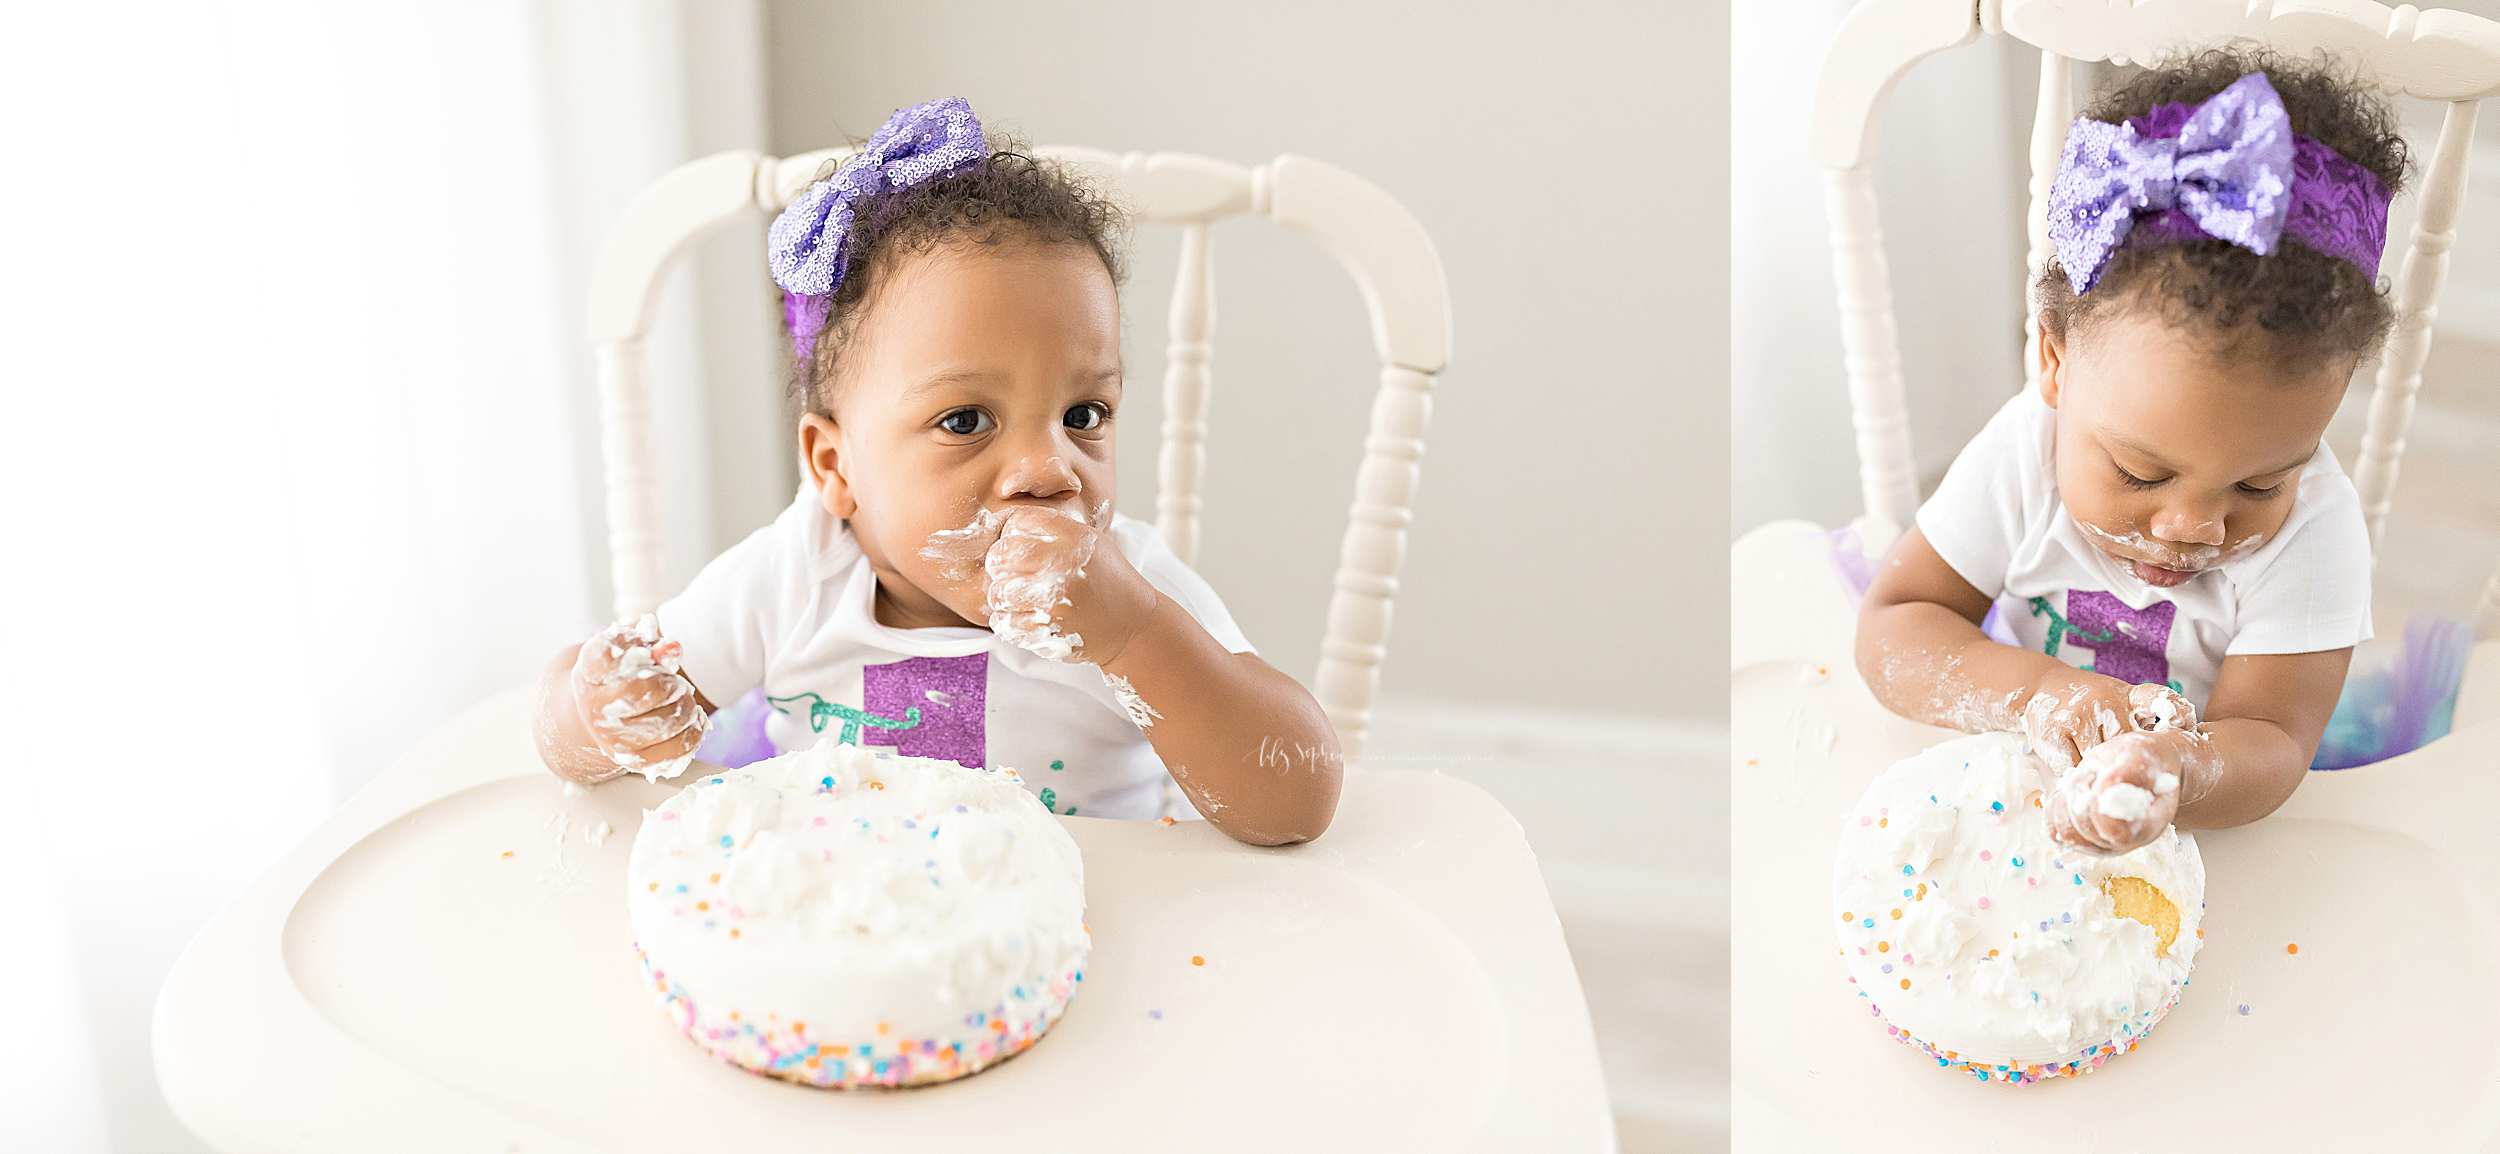 atlanta-buckhead-brookhaven-decatur-lily-sophia-photography--photographer-portraits-grant-park-intown-first-birthday-tutu-cake-smash_1001.jpg